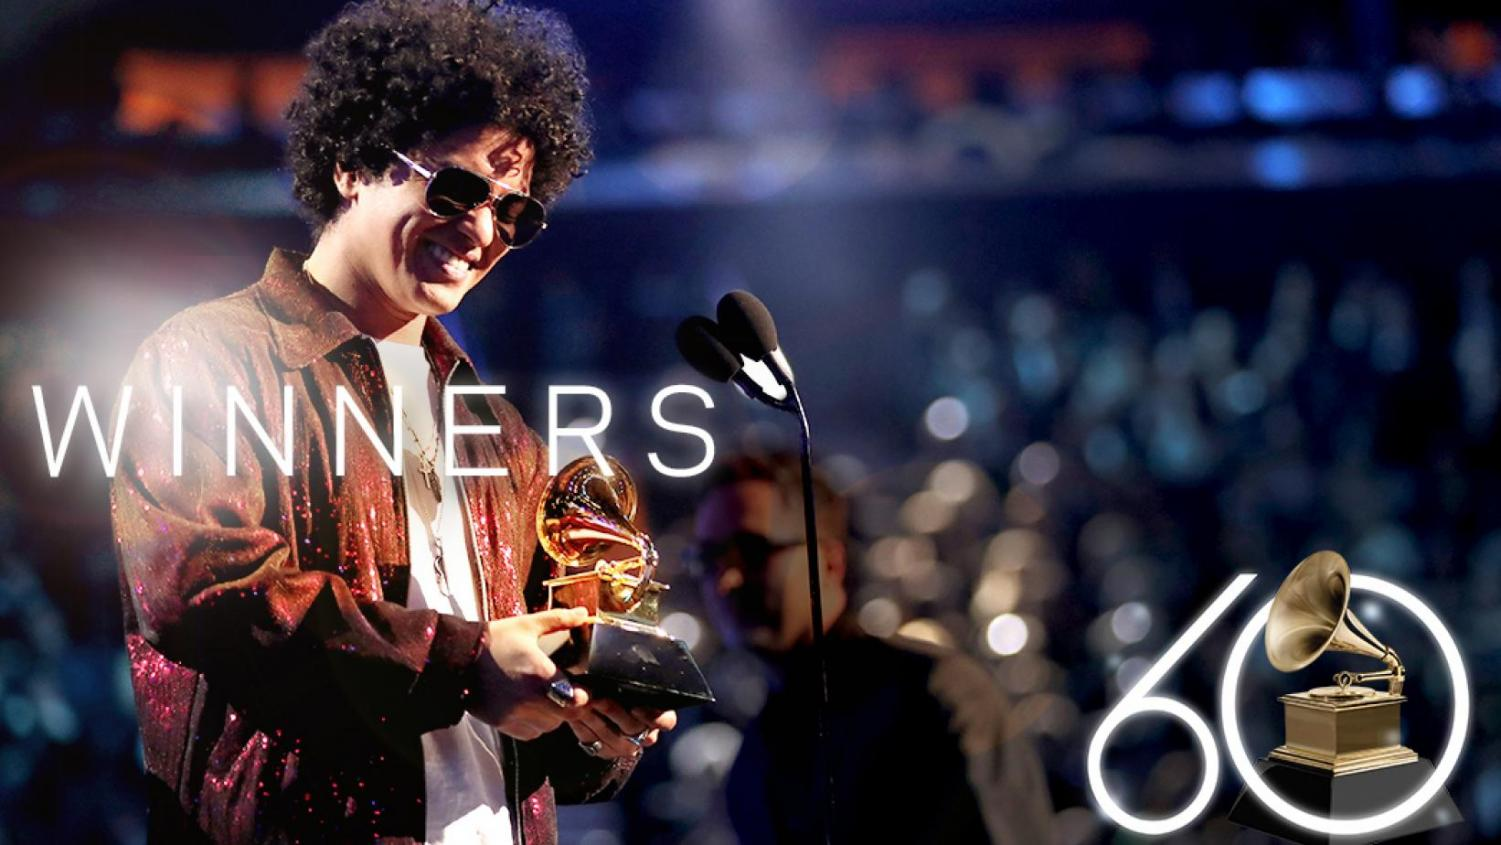 Artist Bruno Mars wins the award for Album of the Year for